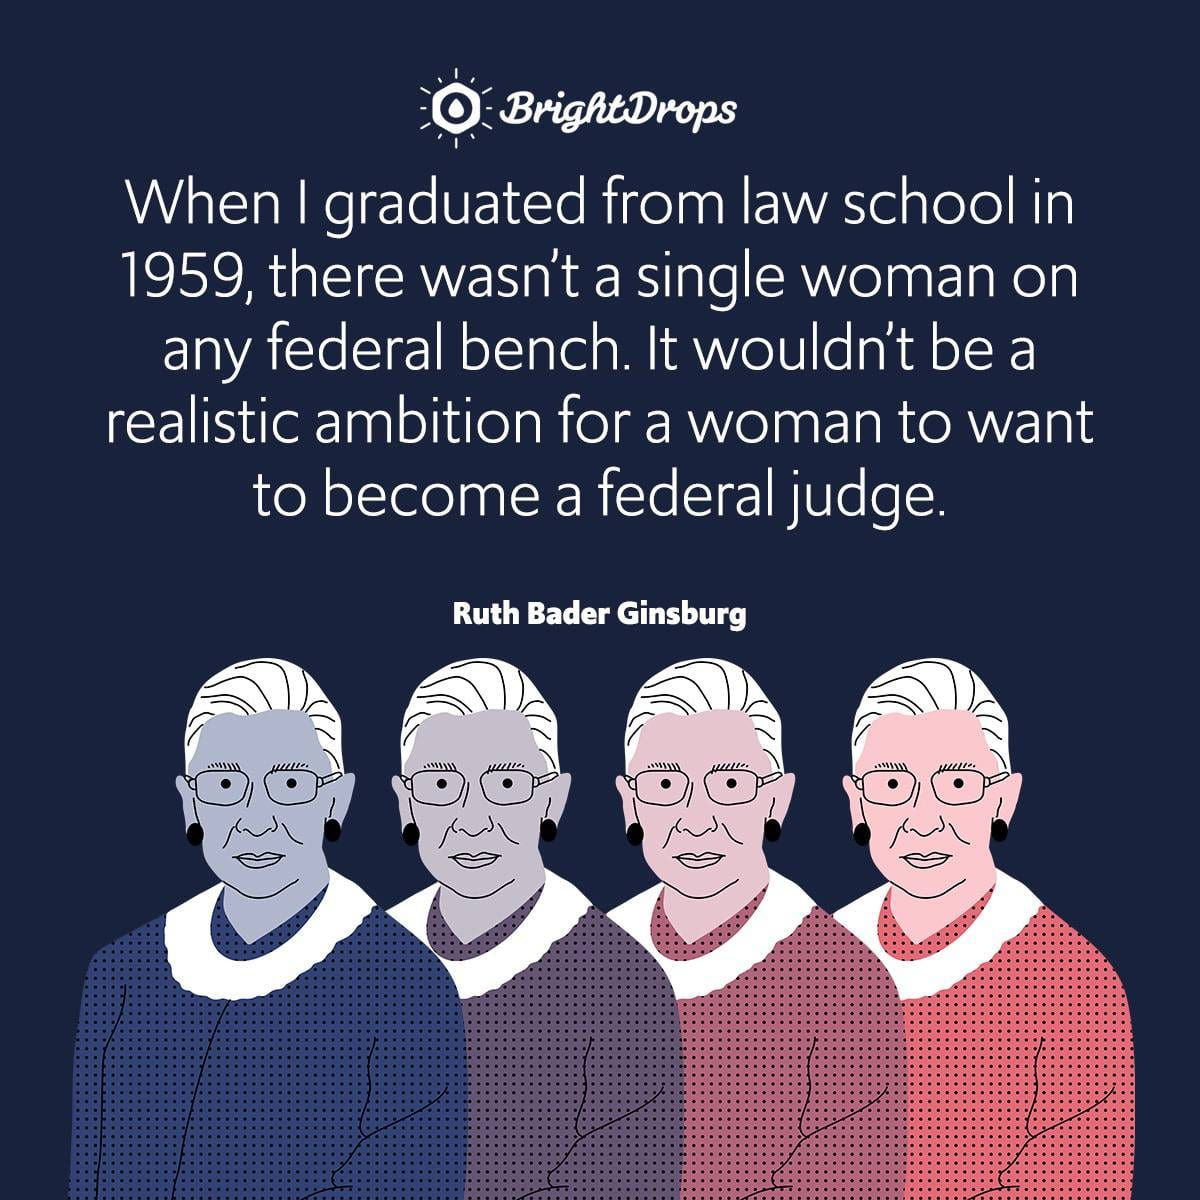 When I graduated from law school in 1959, there wasn't a single woman on any federal bench. It wouldn't be a realistic ambition for a woman to want to become a federal judge.